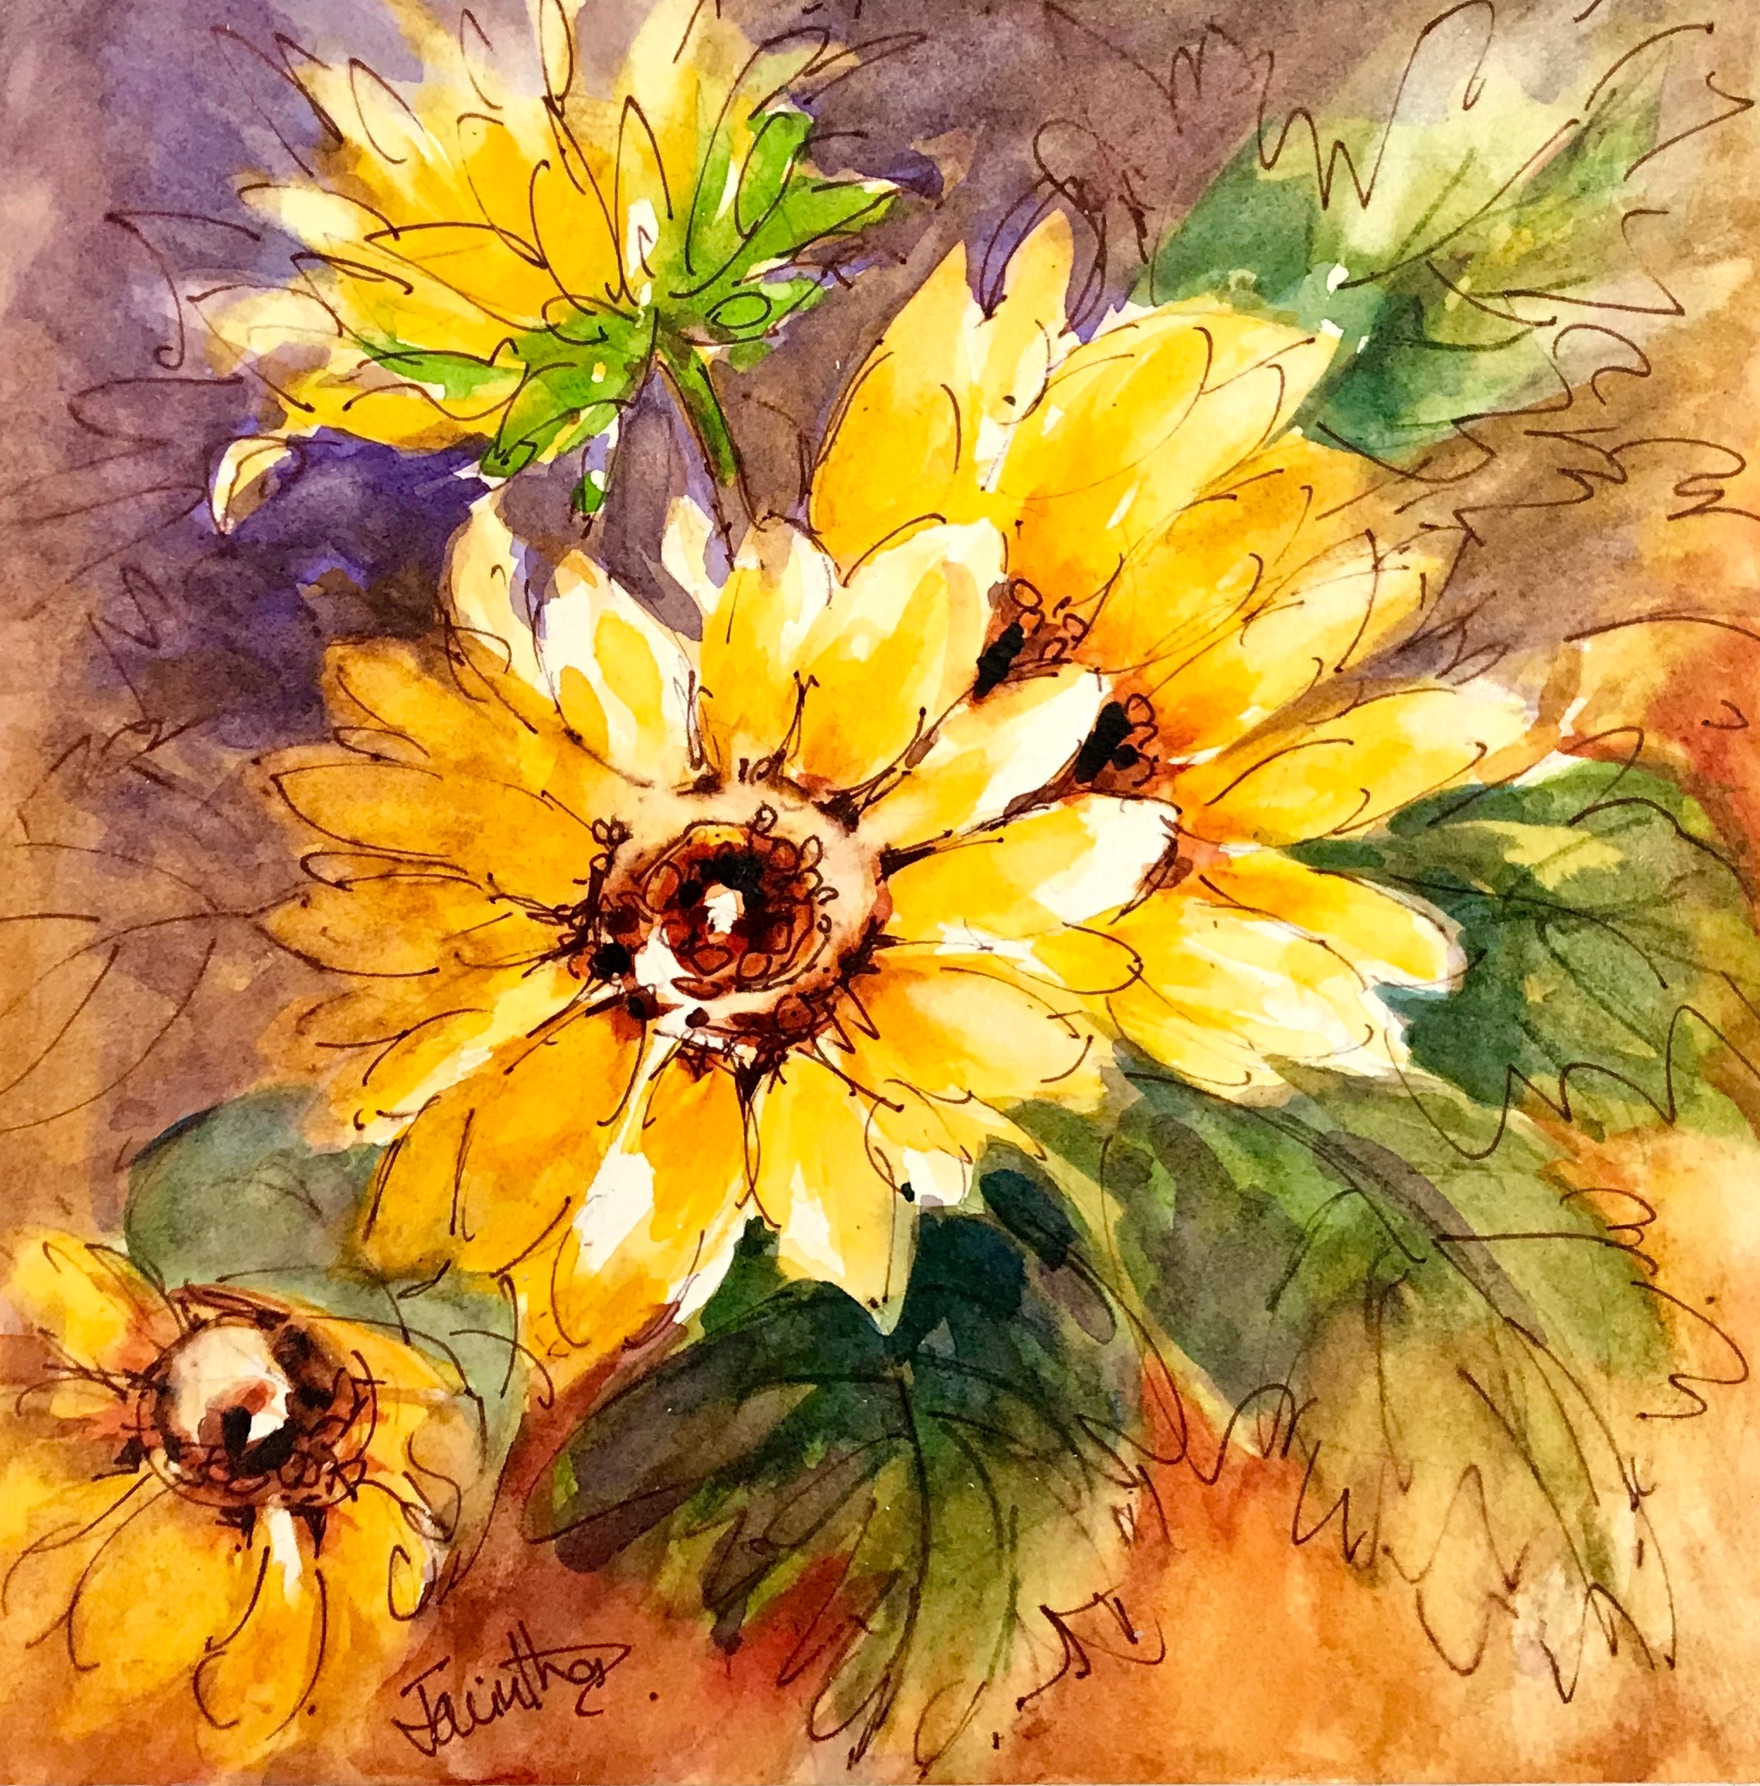 GOLDEN SUNFLOWERS